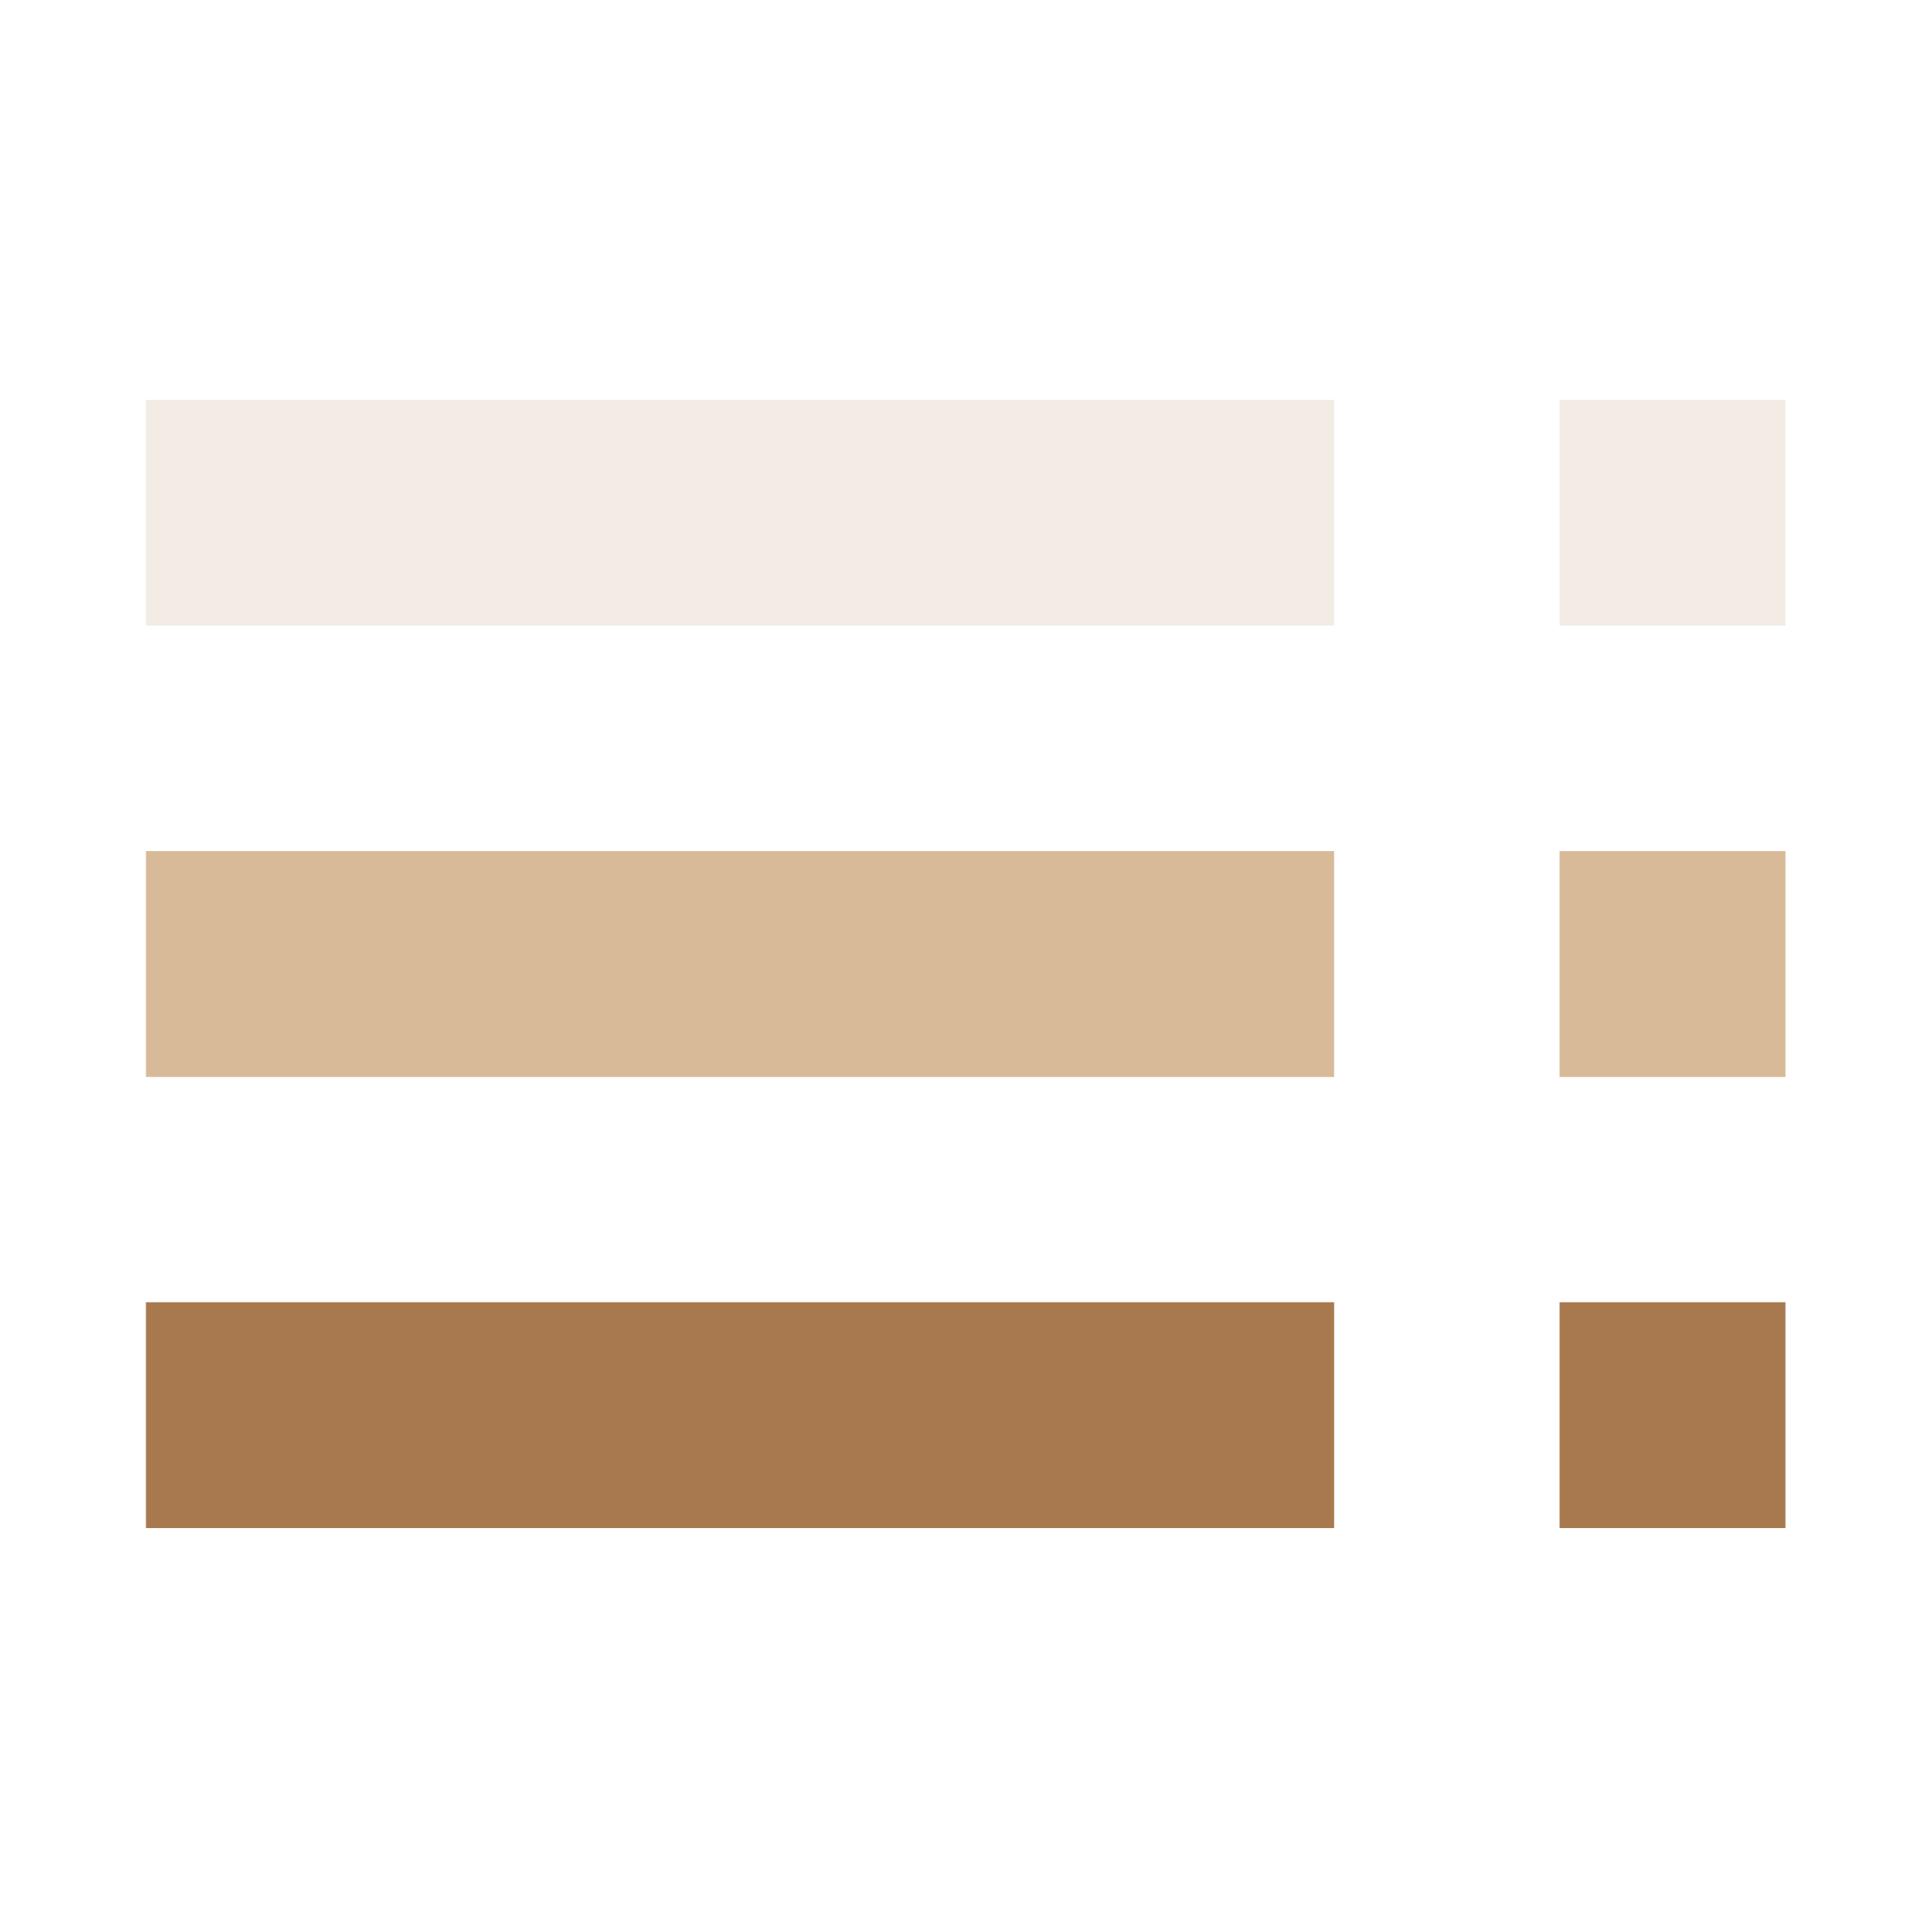 Task and deadline management icon